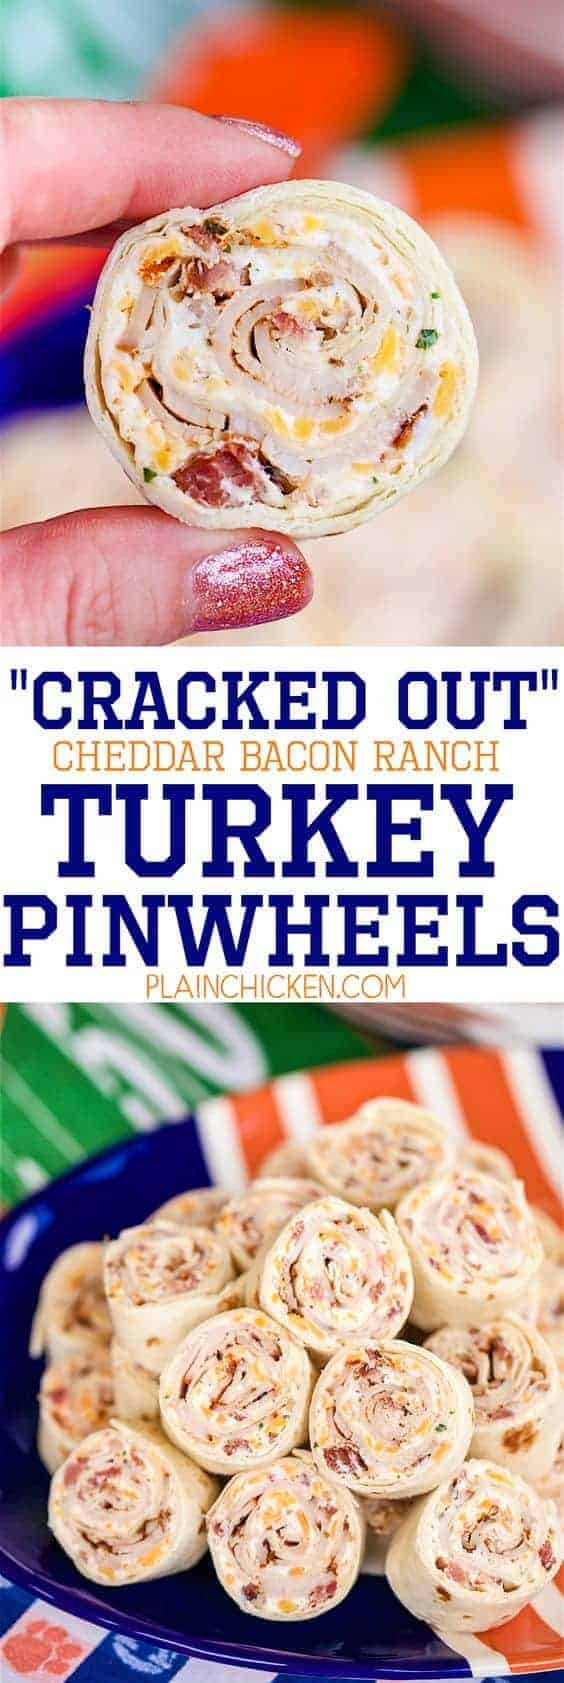 Cracked Out Cheddar Bacon Ranch Turkey Pinwheels by Plain Chicken and other great easy appetizers for a crowd